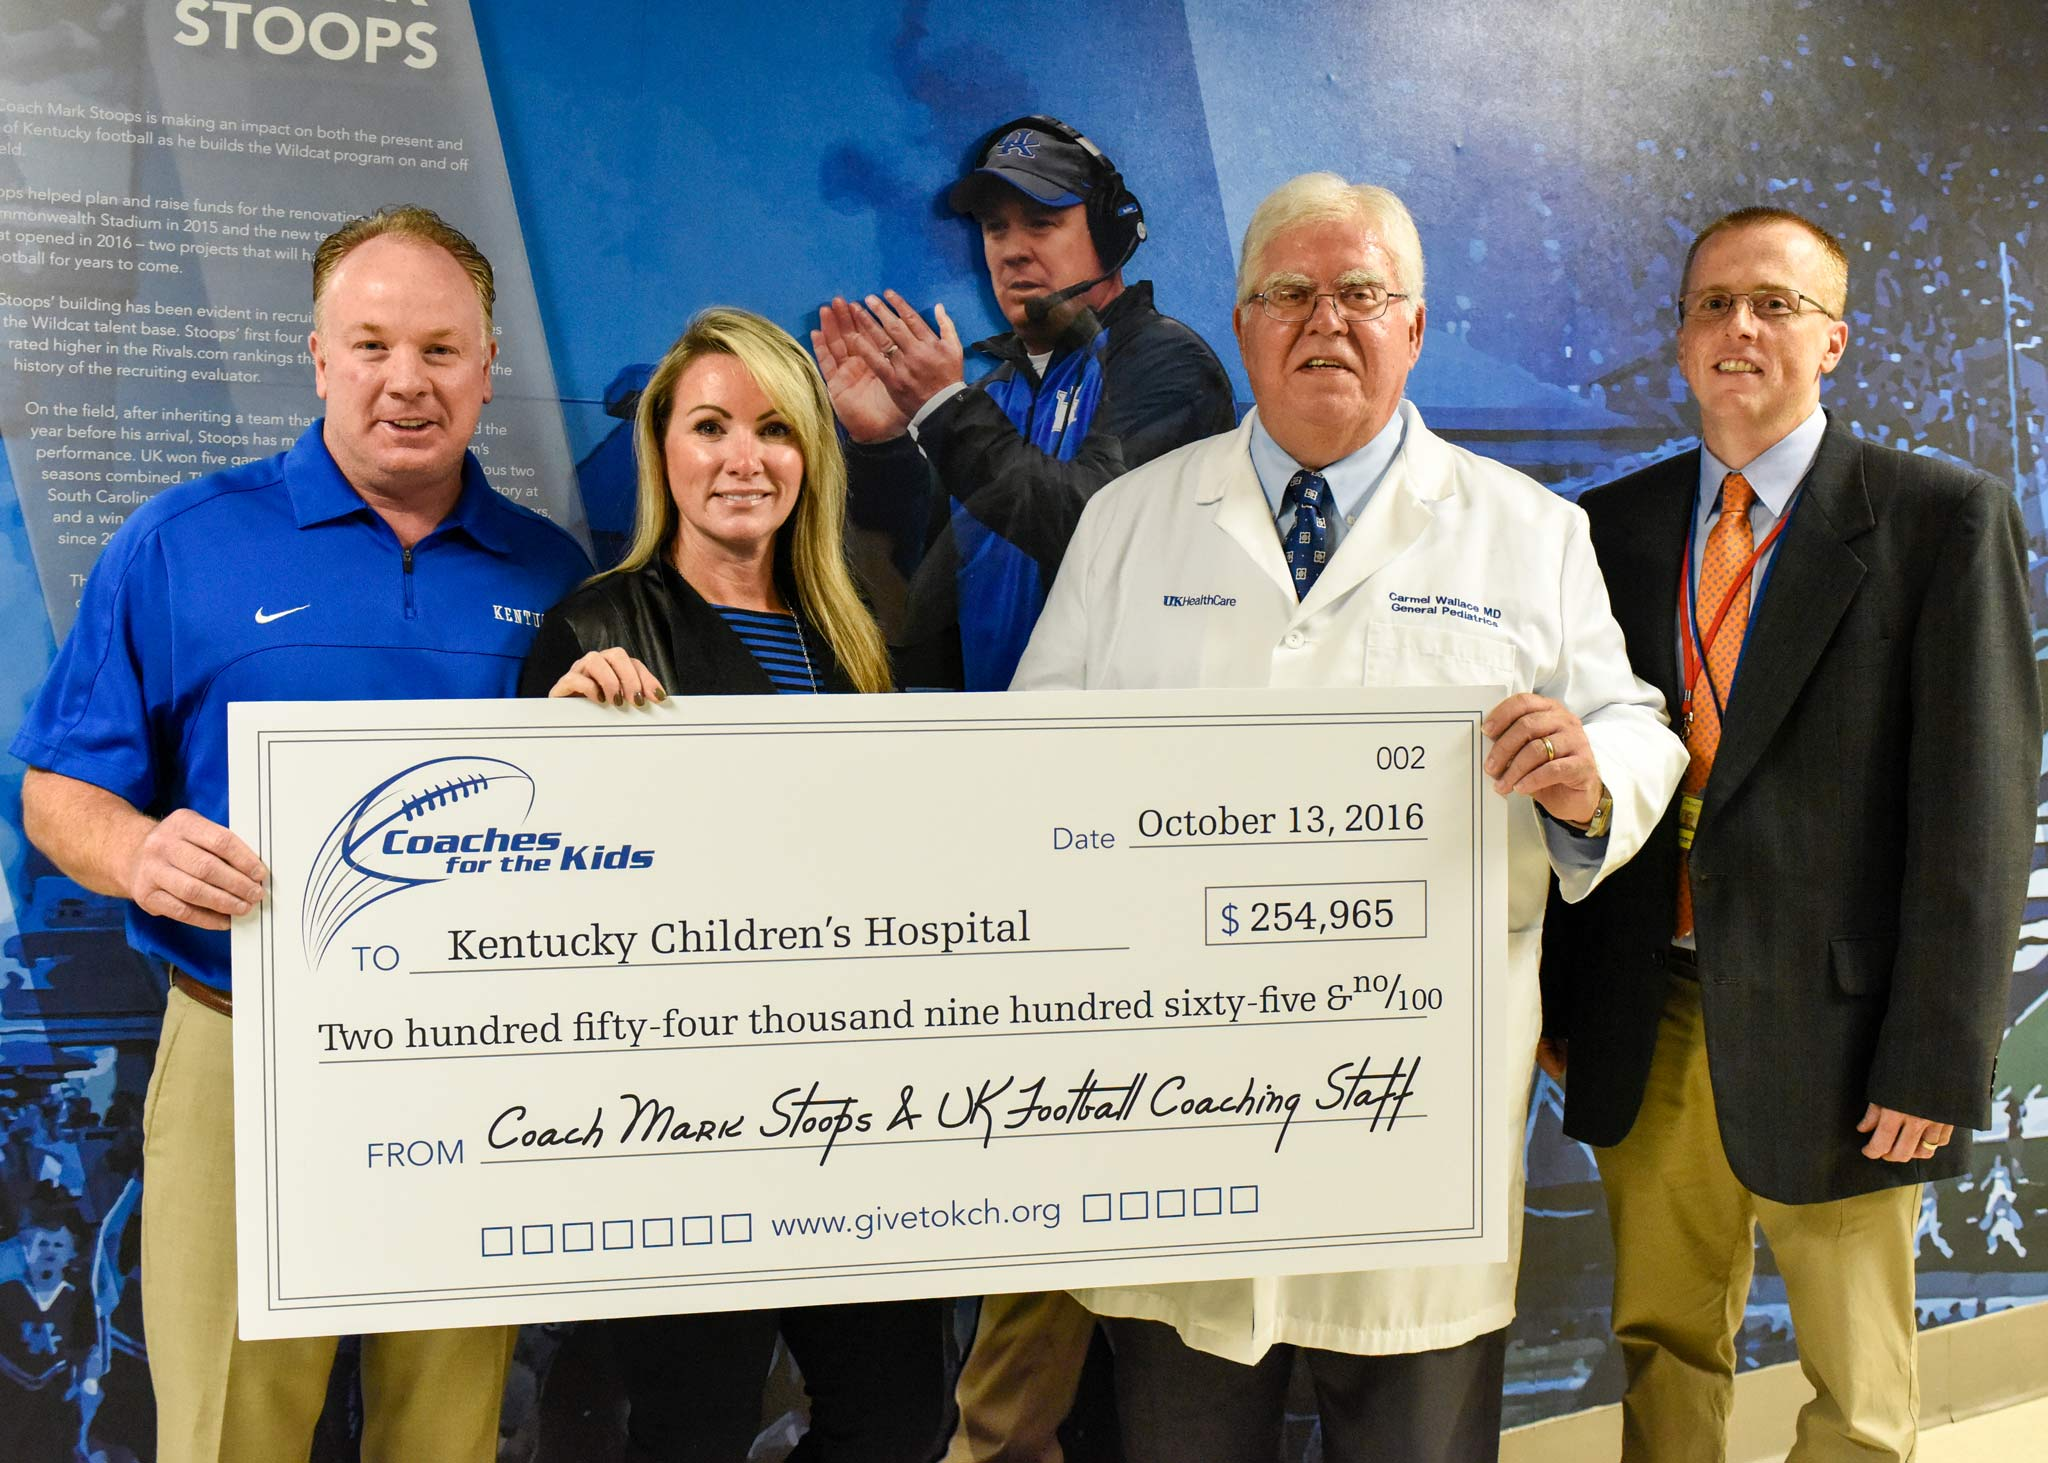 Mark and Chantel Stoops present an oversized check for $254,965 to two doctors from Kentucky Children's Hospital.